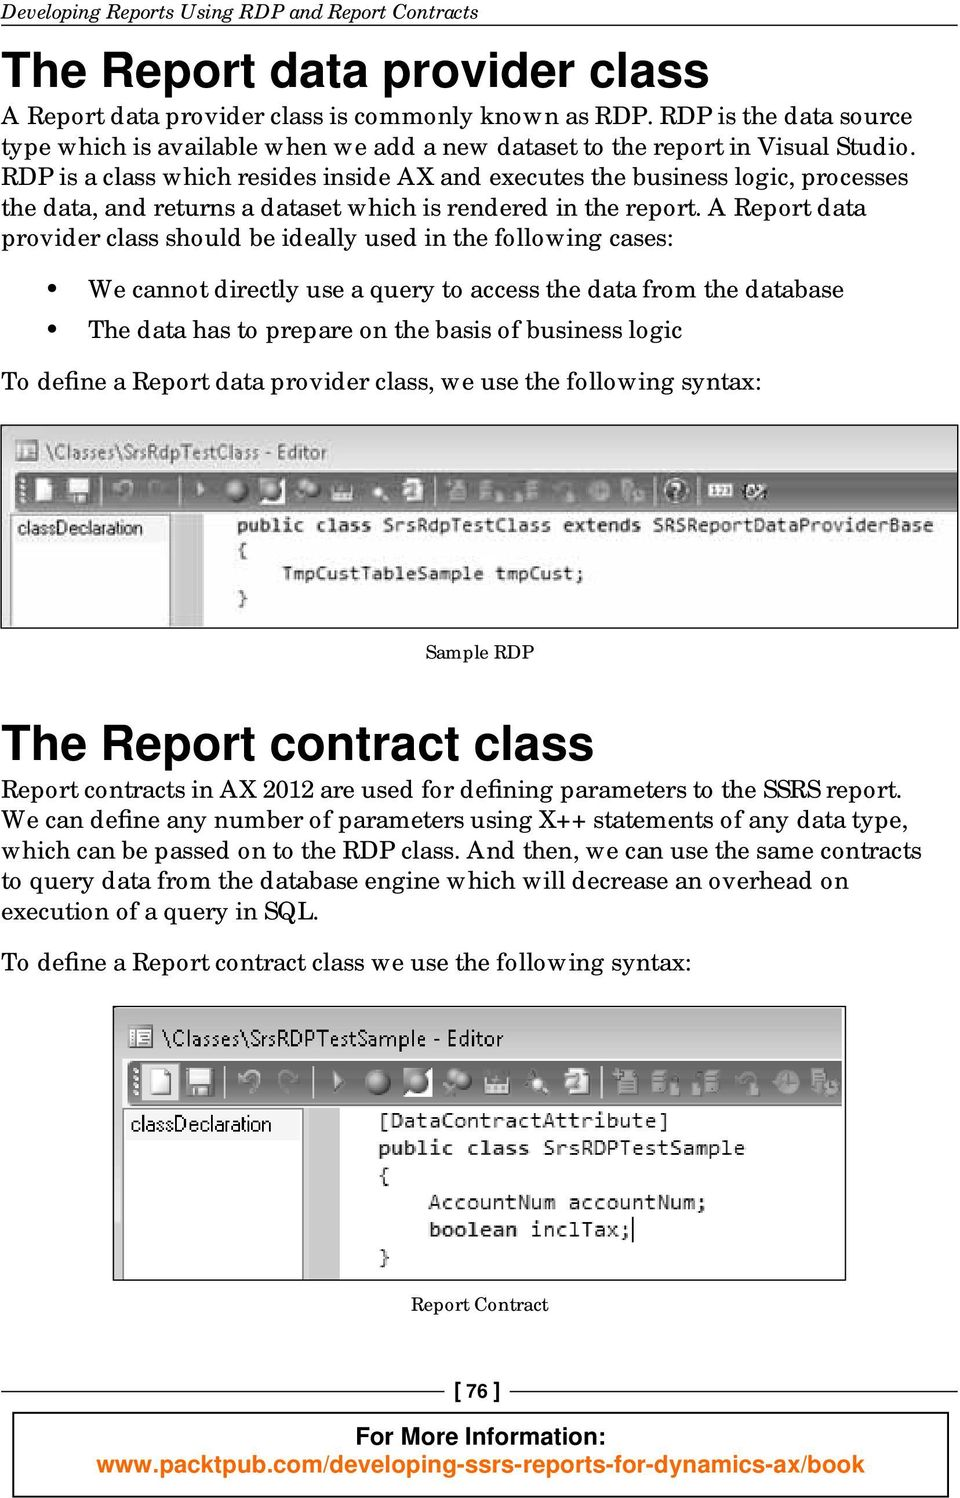 Developing SSRS Reports for Dynamics AX - PDF